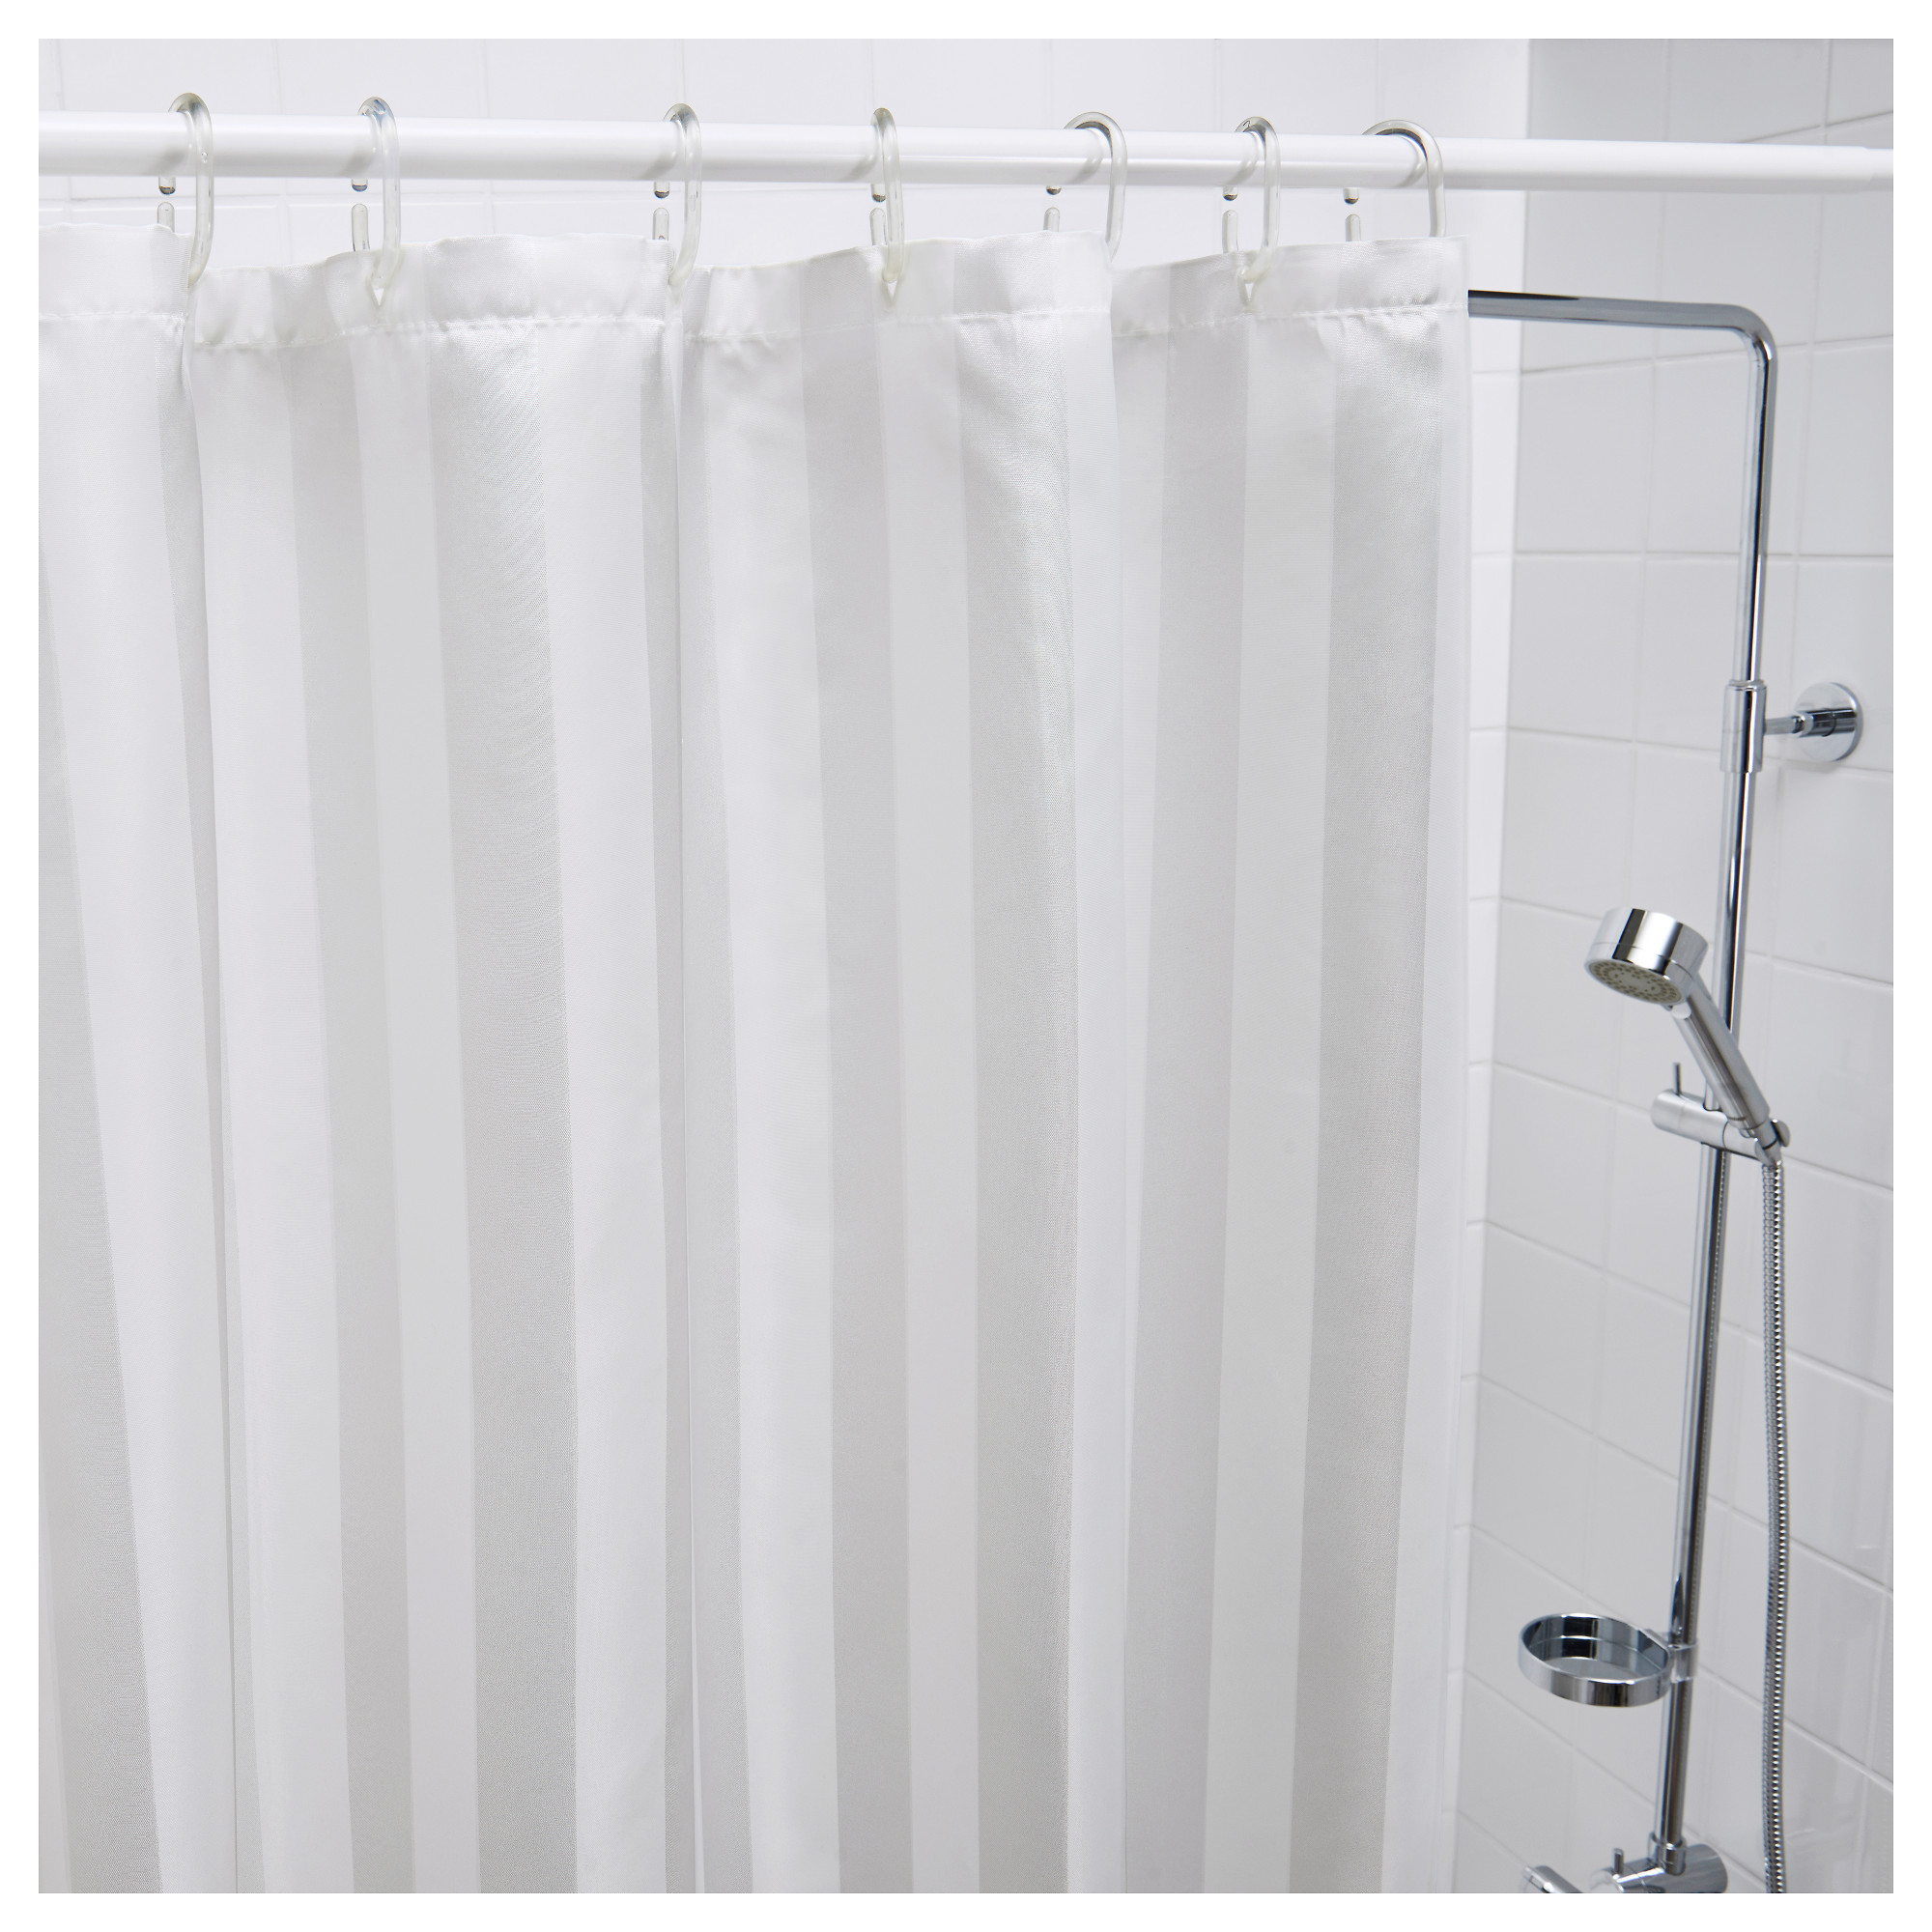 vince shower pdx wayfair bath lyon blush reviews bed camuto curtain cotton